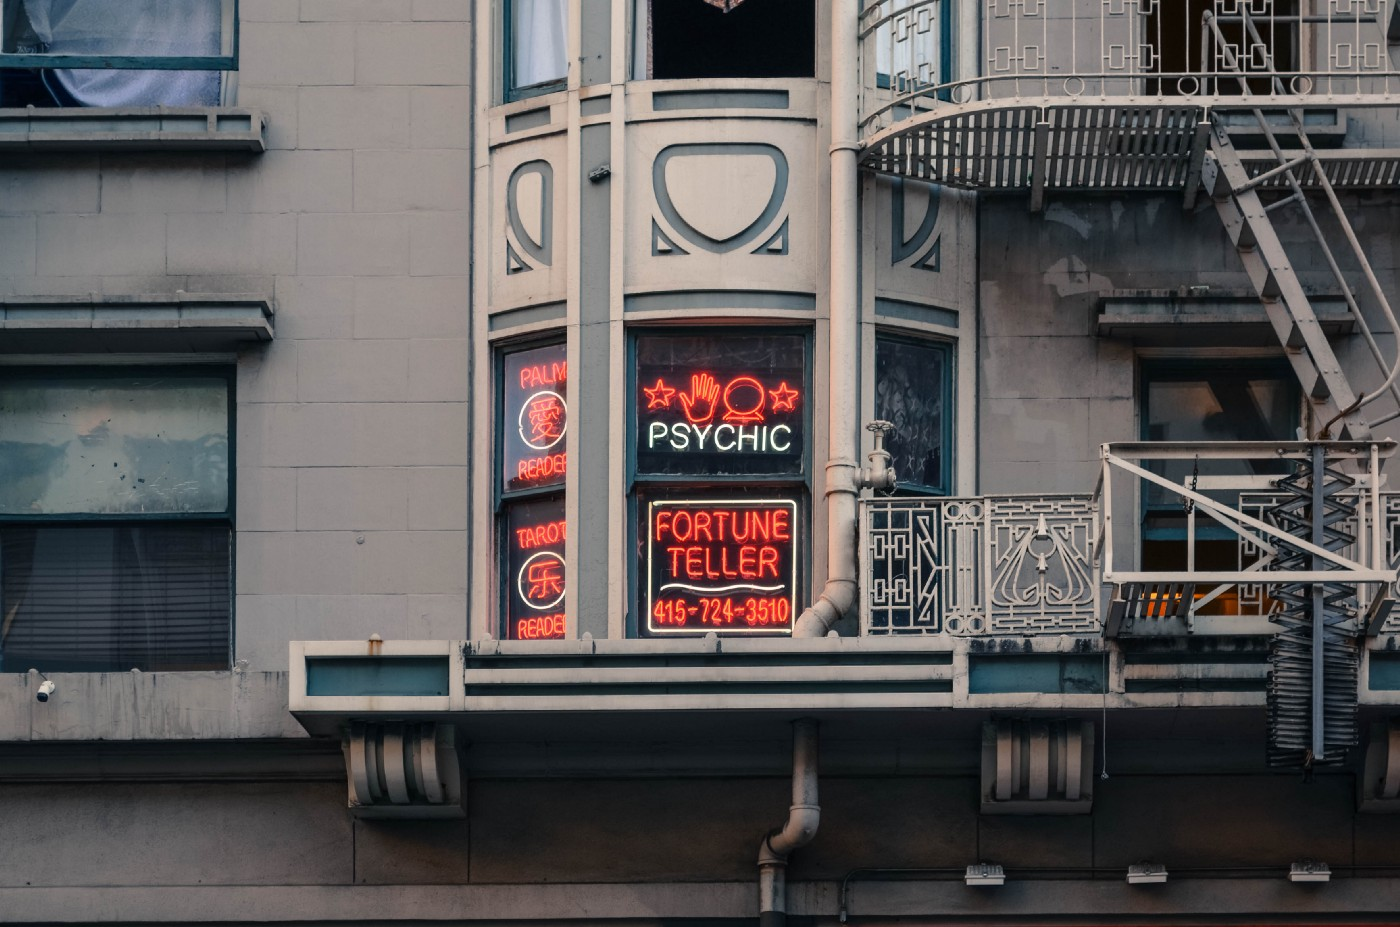 Picture of a window with a neon sign advertising for a psychic reader.